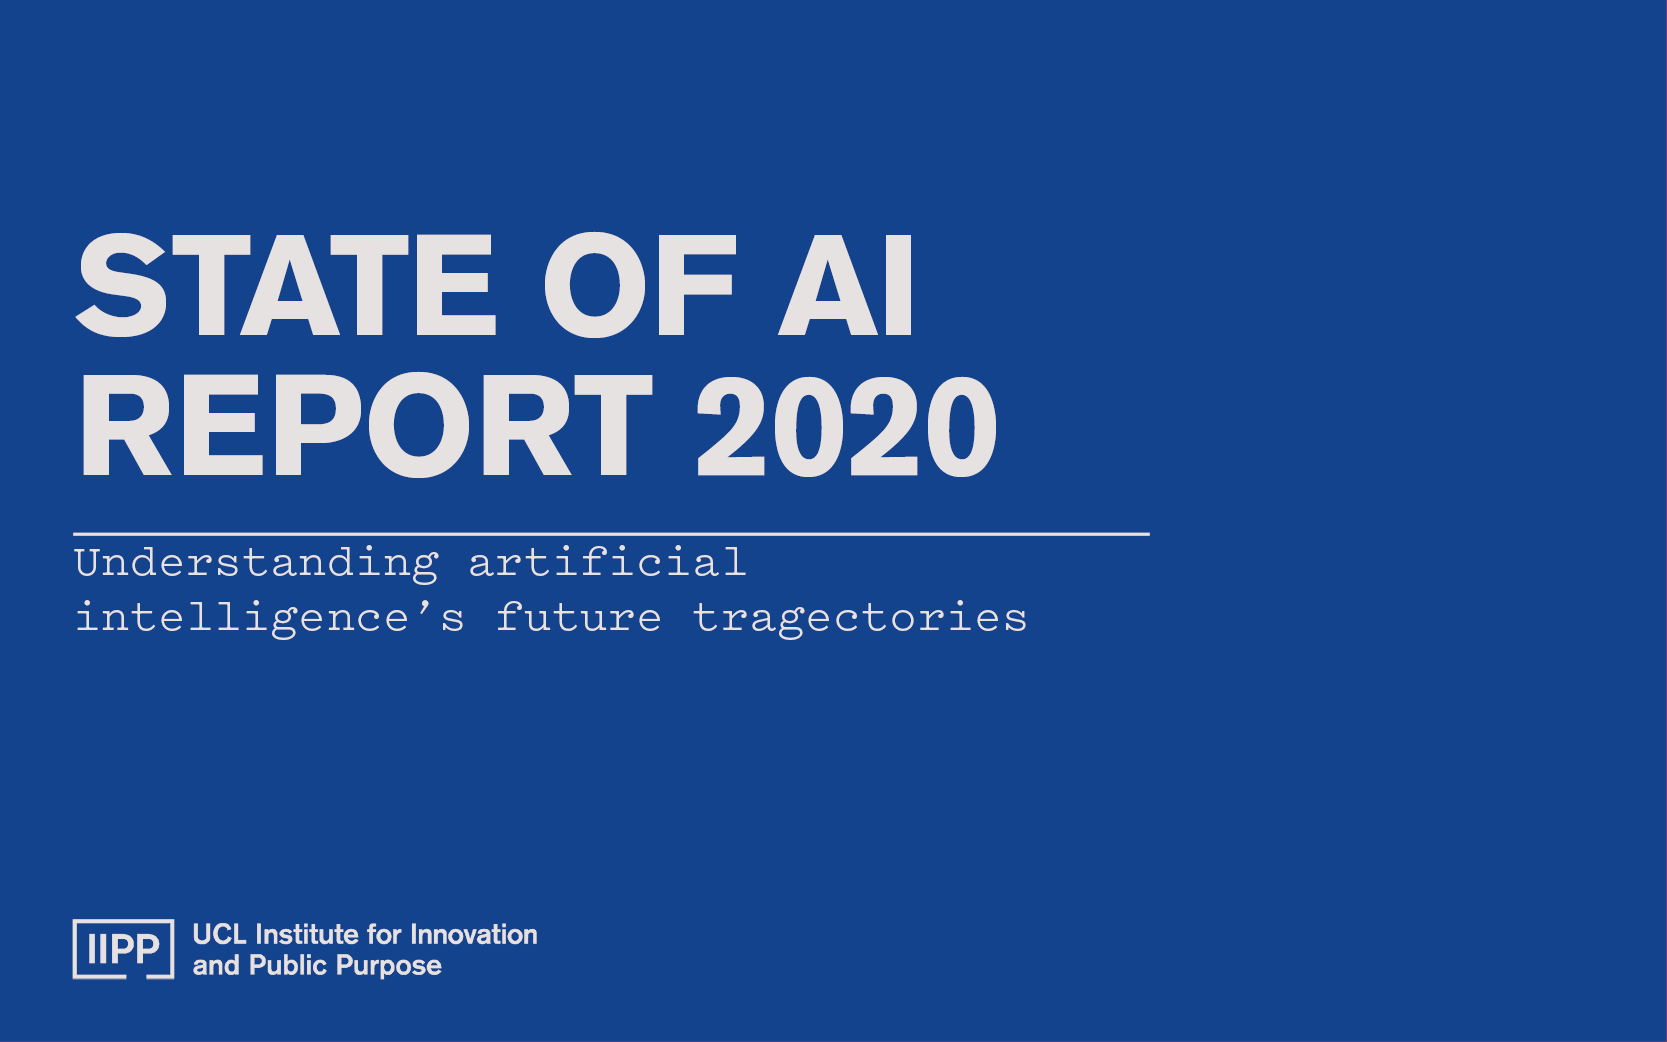 state_of_ai_event_graphics_website_800x500.png